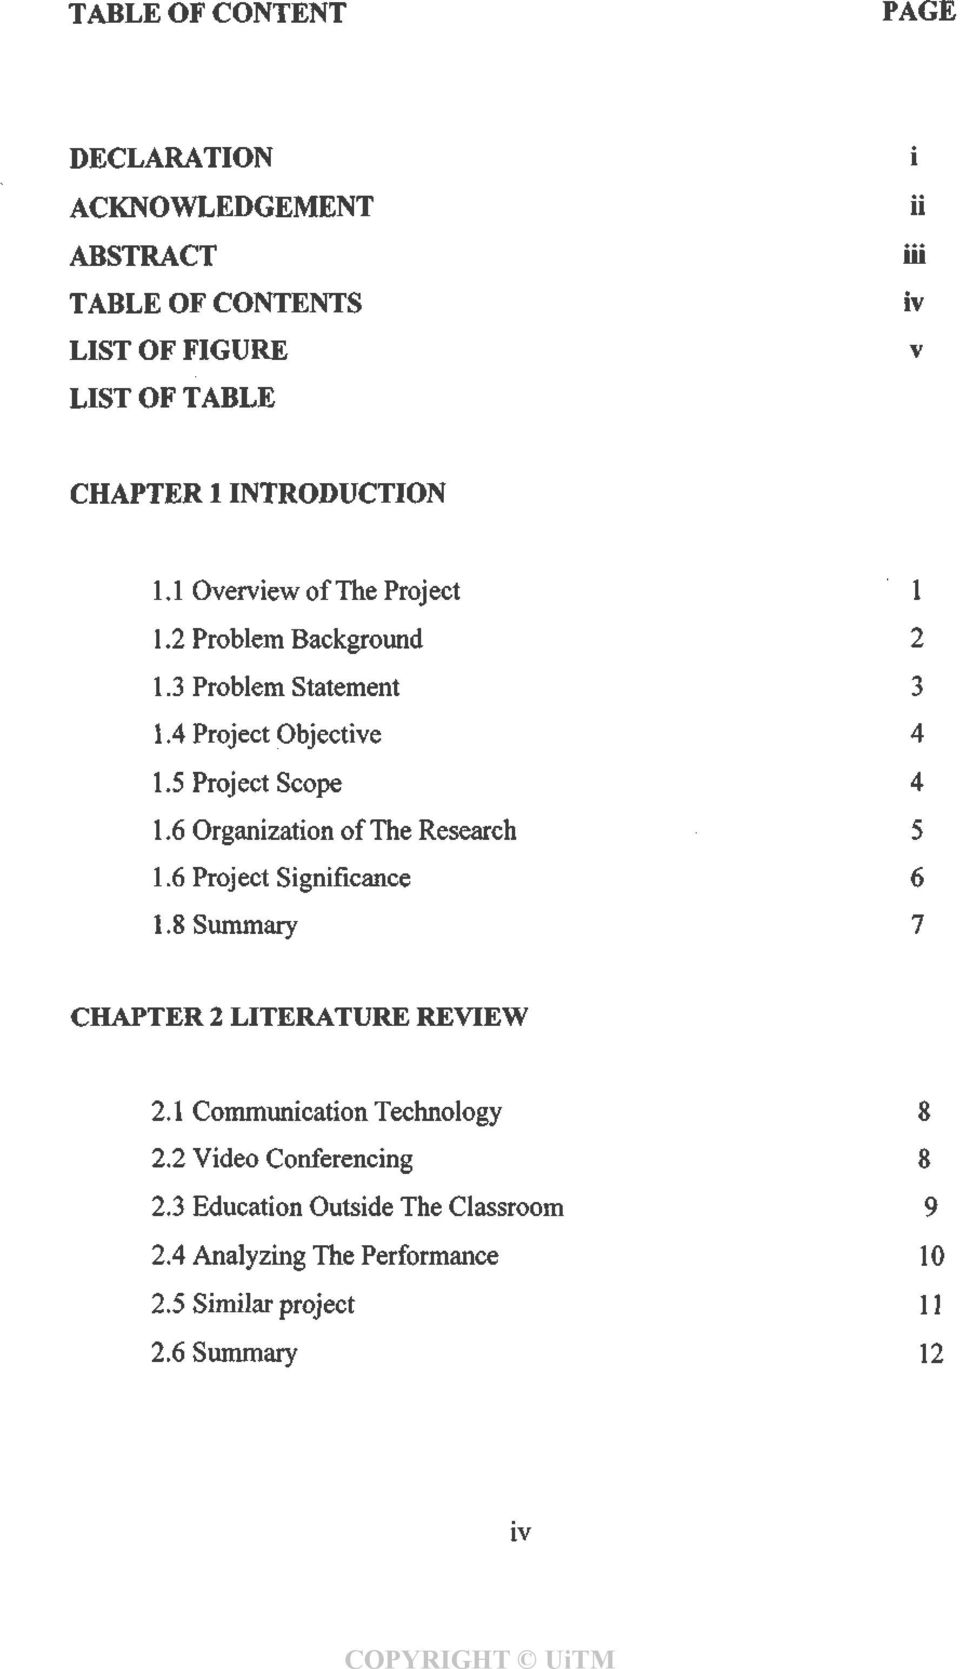 5 Project Scope 4 1.6 Organization of The Research 5 1.6 Project Significance 6 1.8 Summary 7 CHAPTER 2 LITERATURE REVIEW 2.